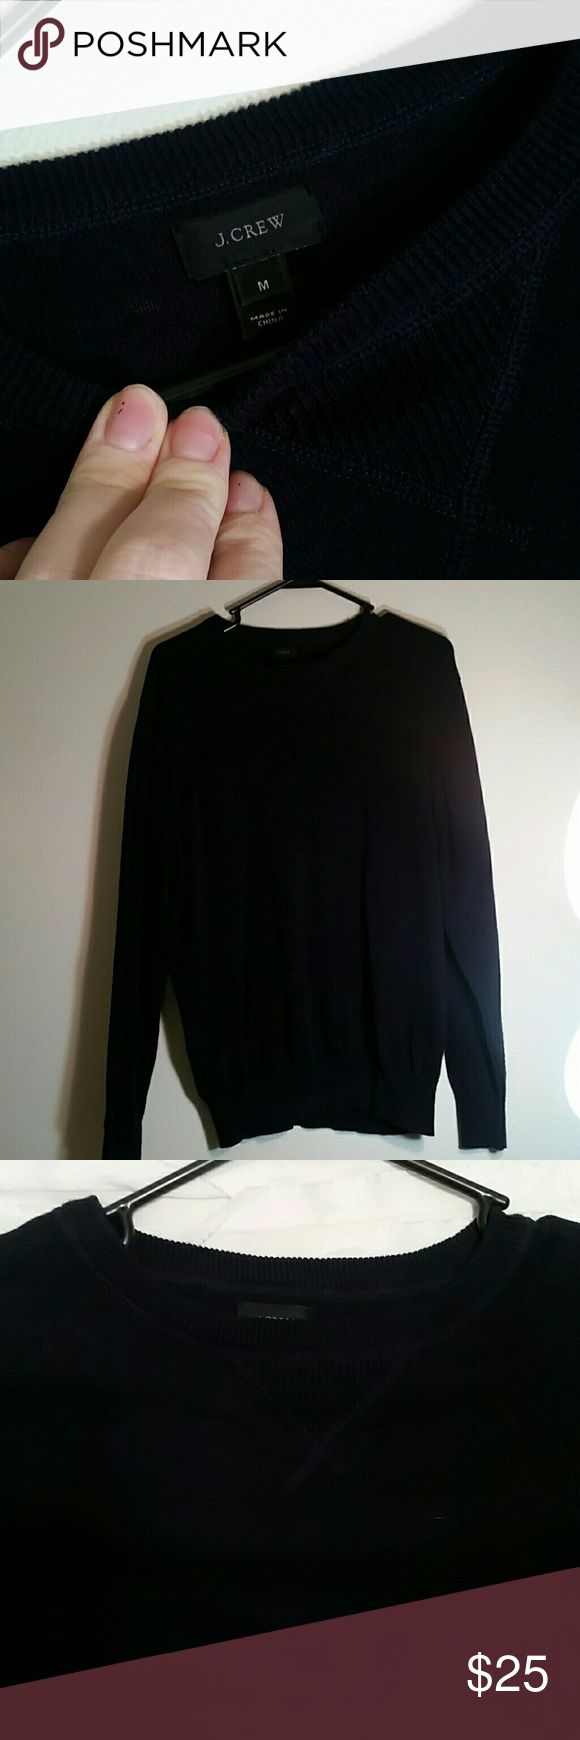 J. CREW MENS CREWNECK SWEATER Dark Navy J. Crew crew neck sweater. Excellent used condition. I accept reasonable offers and do bundles! J. Crew Sweaters Crewneck